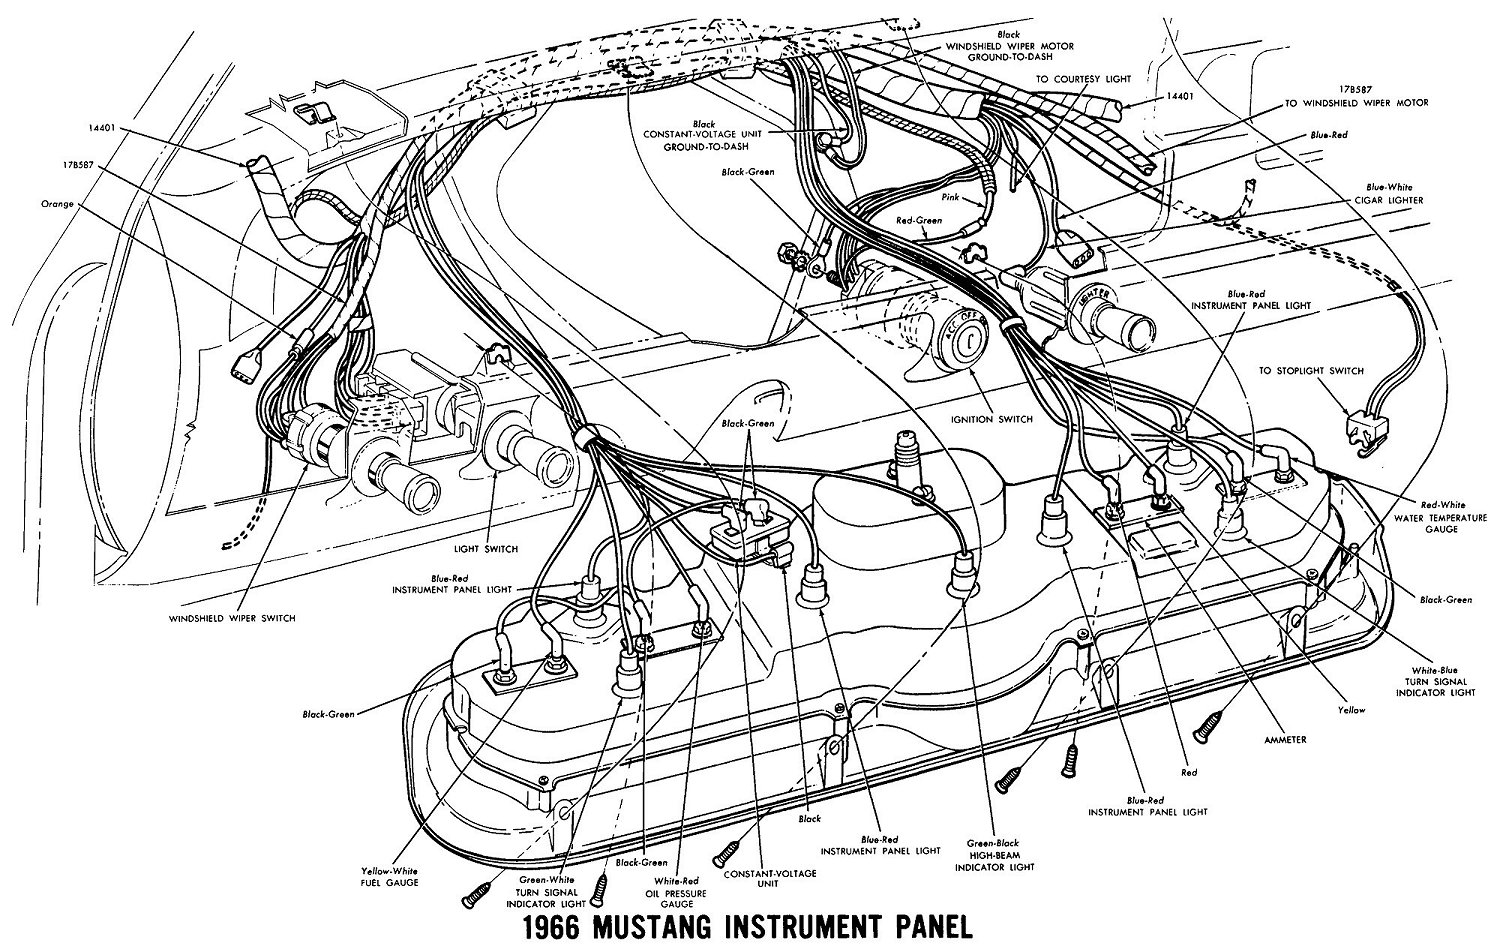 66instr 1966 mustang wiring diagrams average joe restoration 1966 mustang headlight wiring diagram at readyjetset.co